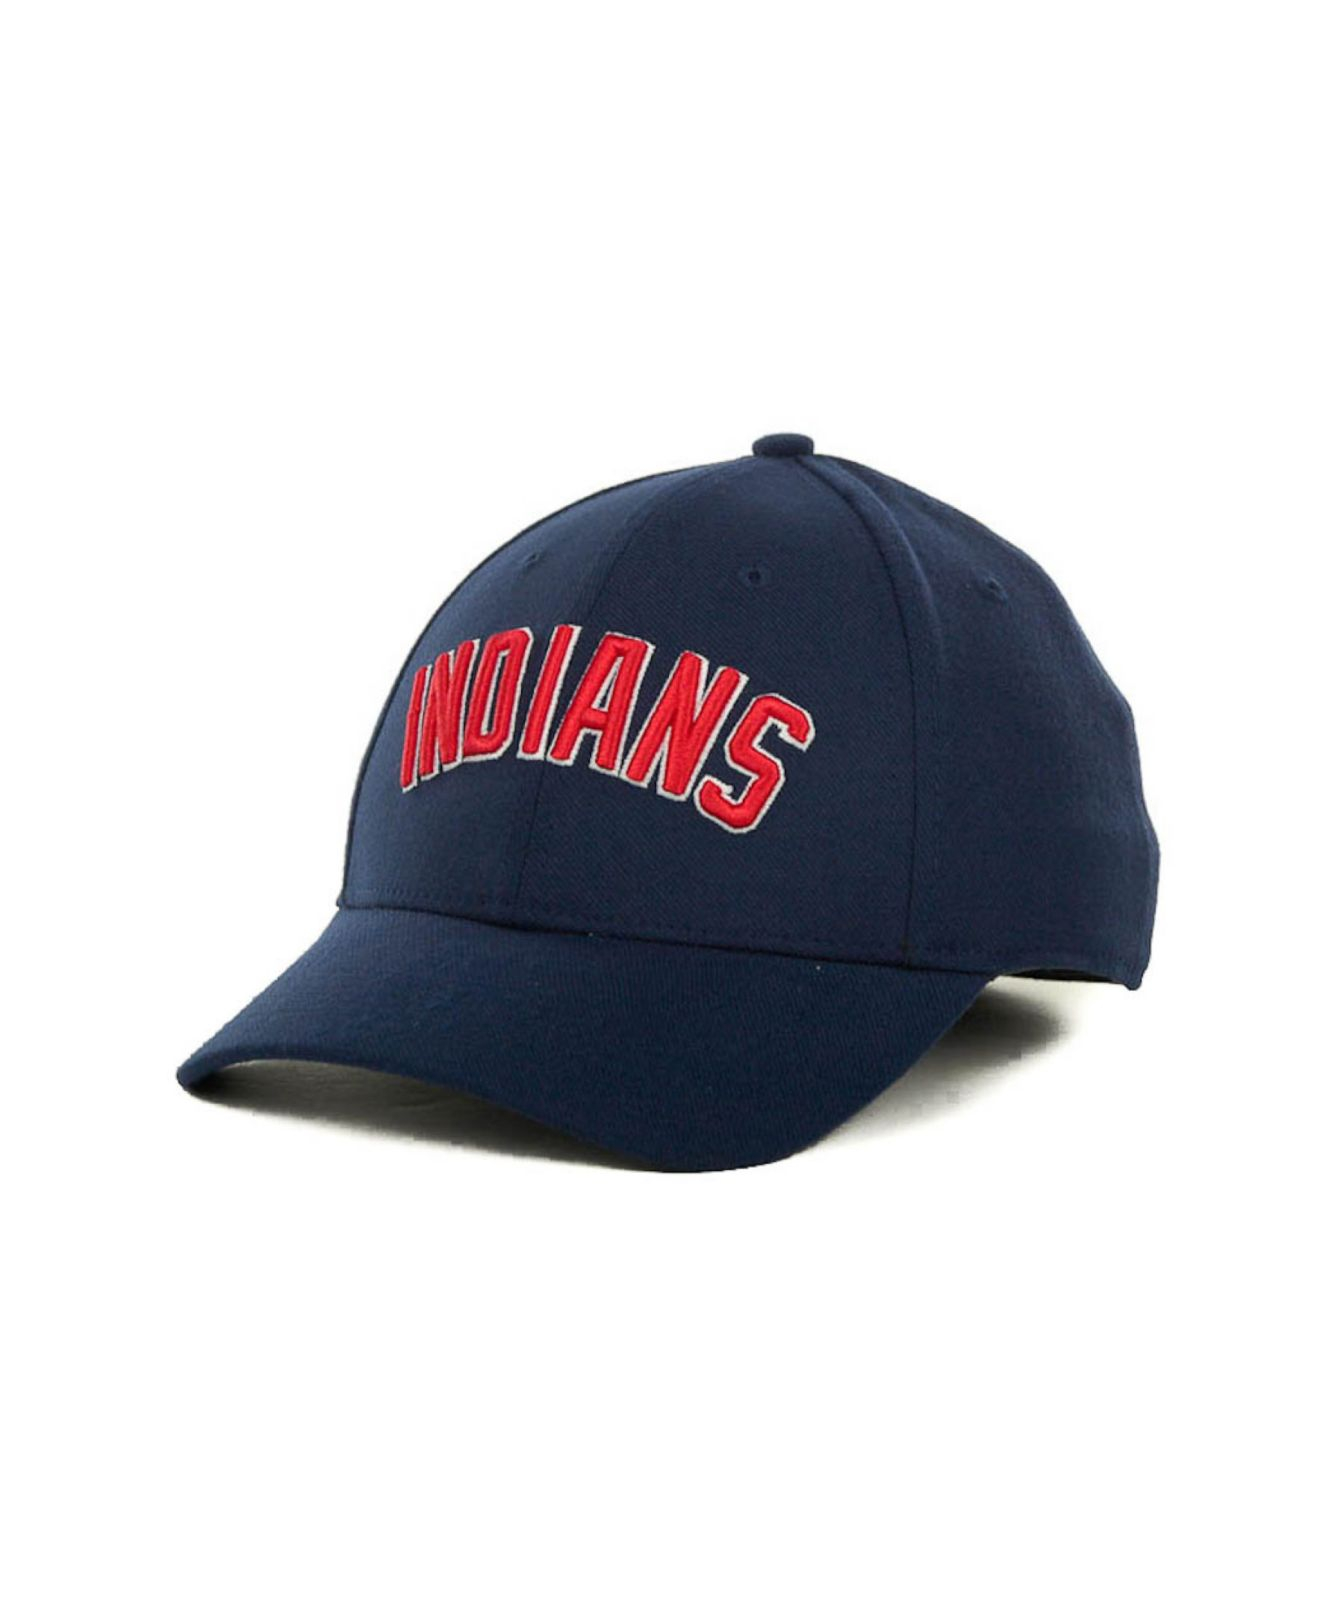 finest selection 93a72 a8af3 ... get lyst nike cleveland indians dri fit swoosh flex cap in blue for men  ababa 3b50a